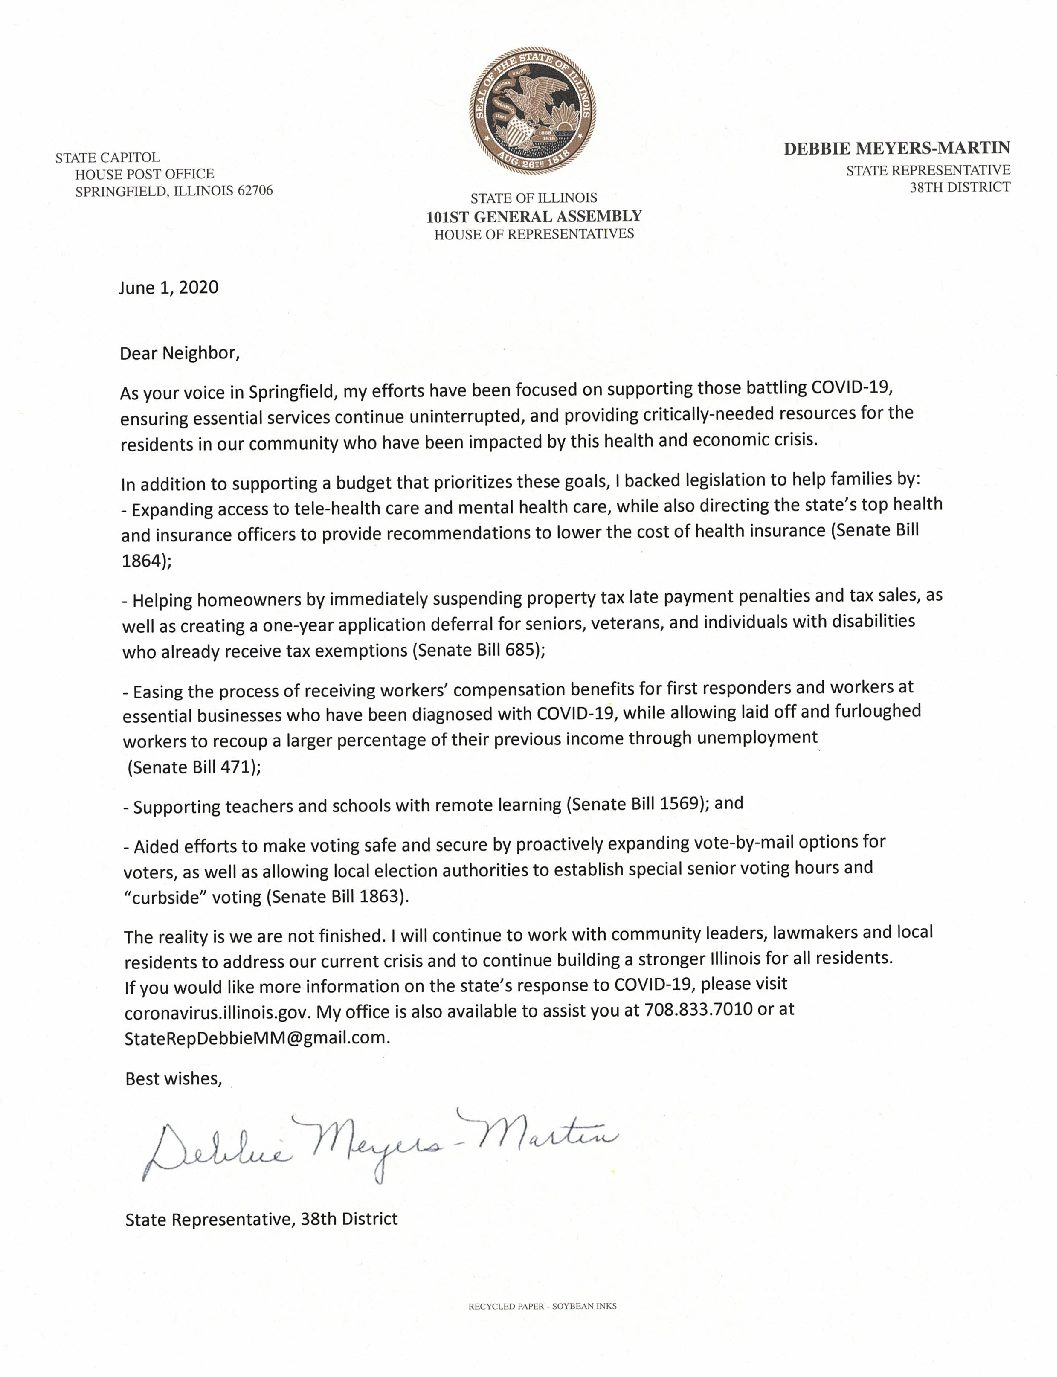 Announcement from Debbie Meyers-Martin